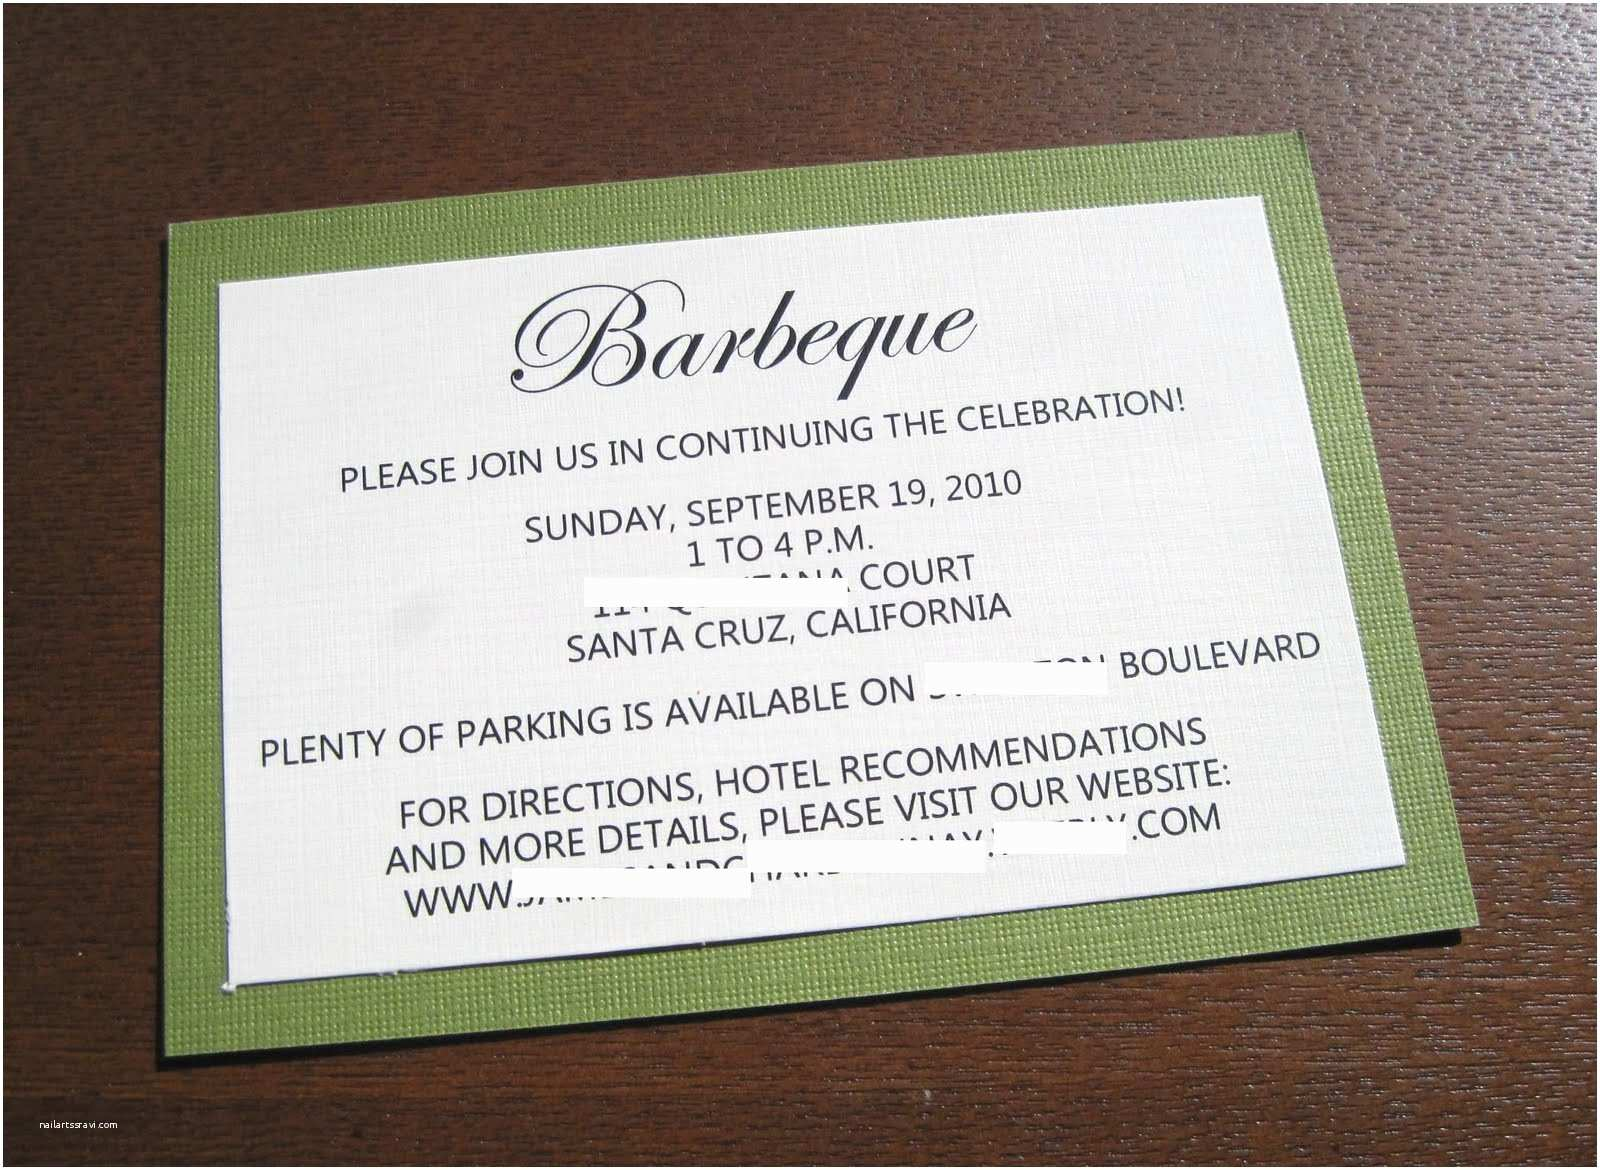 Fedex Wedding Invitations High Tide Low Wedding Invitations are Ou Want to